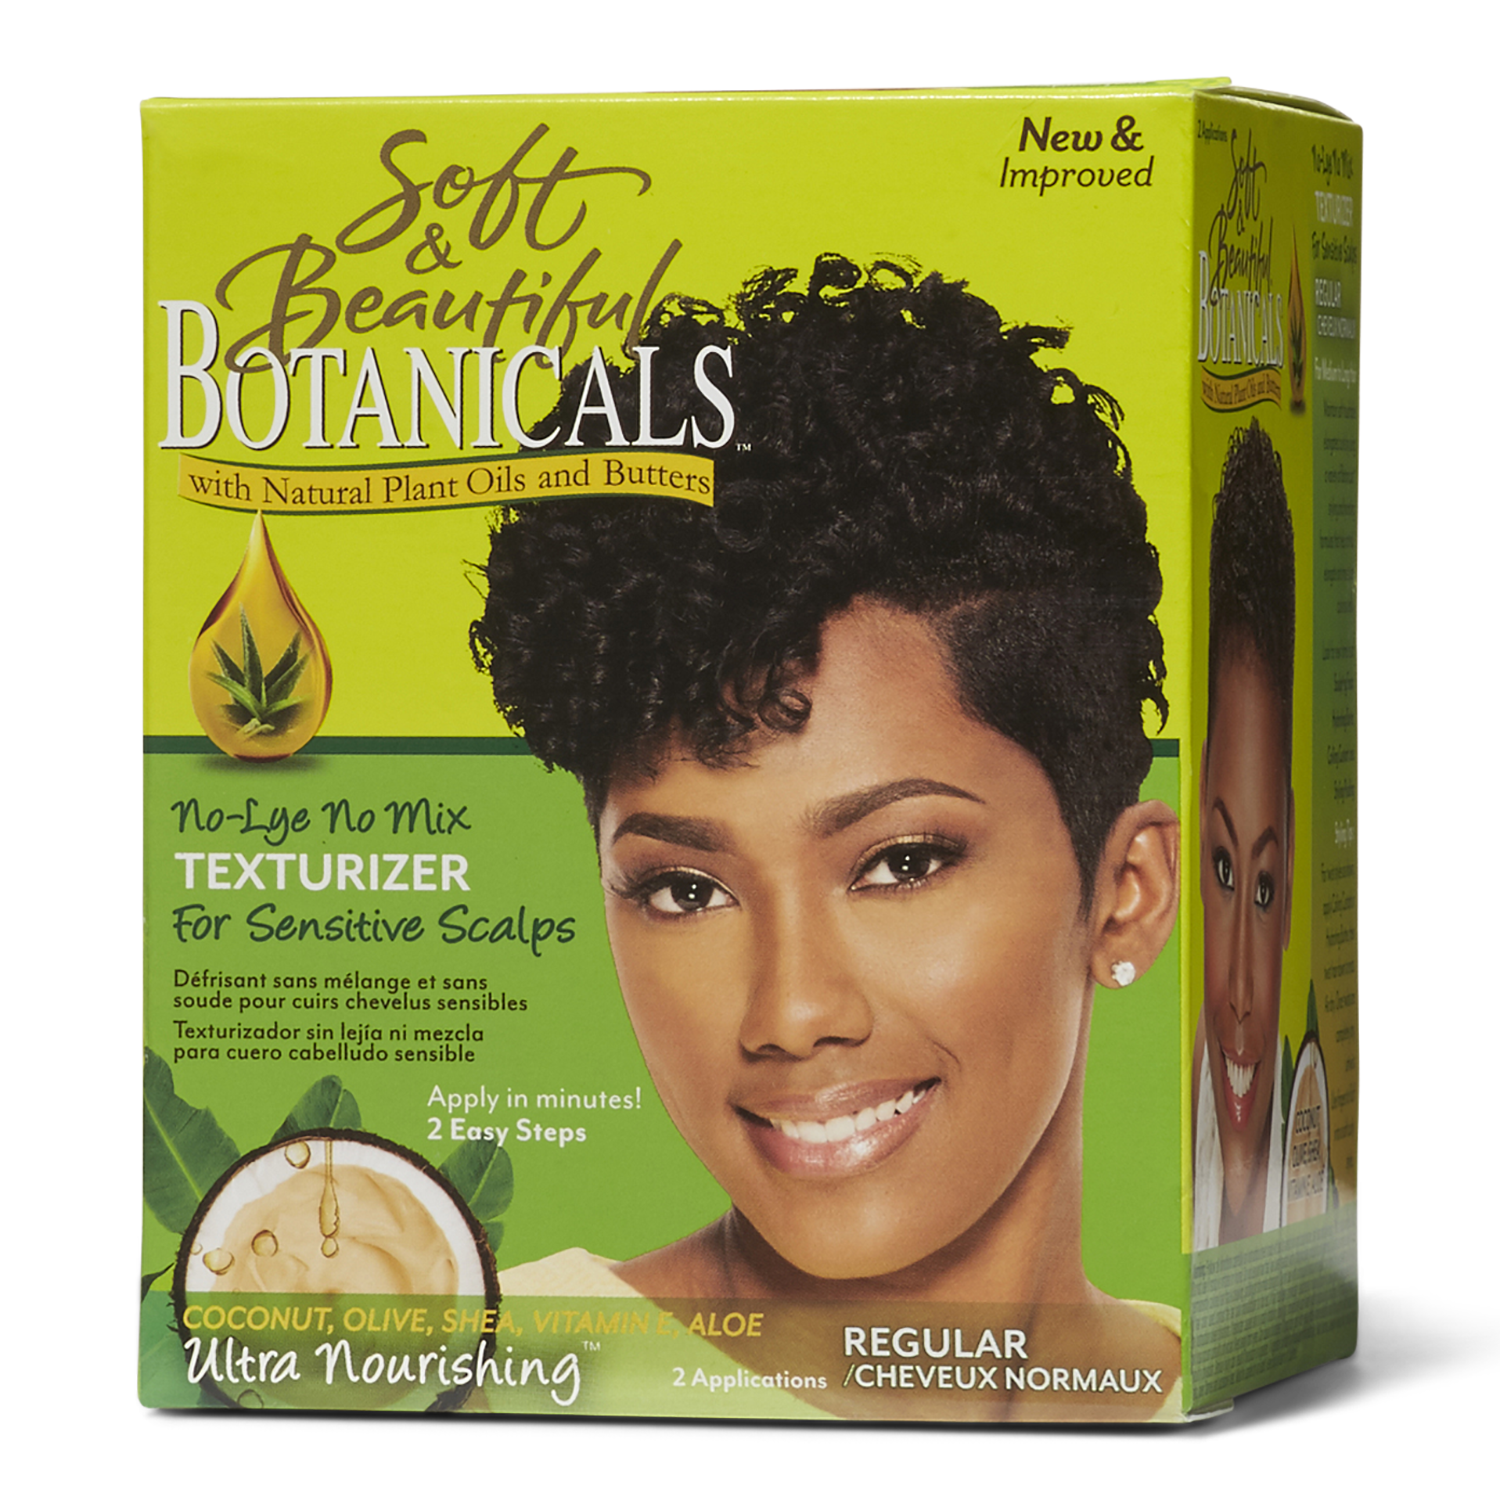 Soft Amp Beautiful Botanicals Regular Texturizer